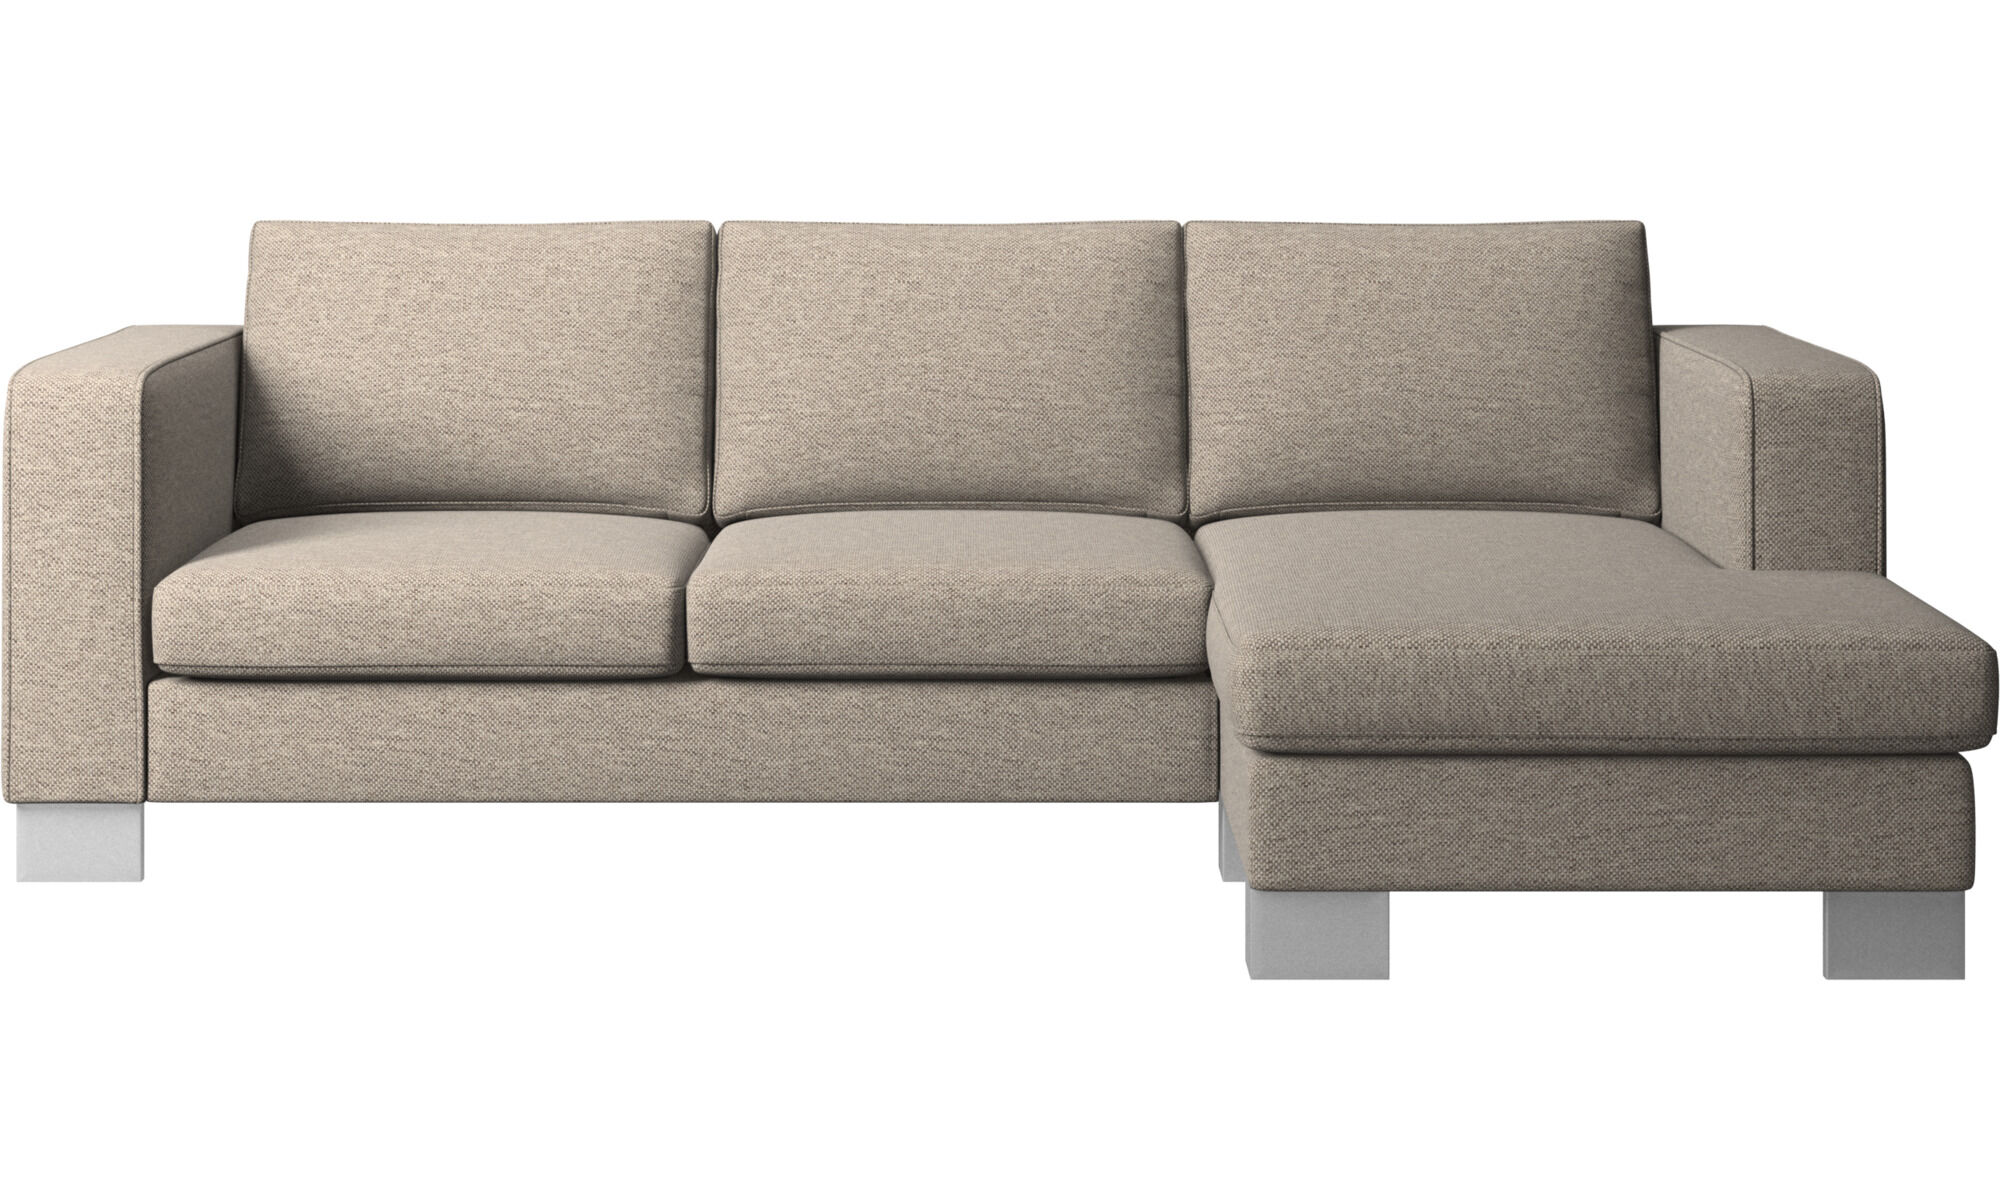 Chaise lounge sofas - Ini 2 sofa with resting unit - Beige - Fabric  sc 1 st  BoConcept : beige chaise - Sectionals, Sofas & Couches